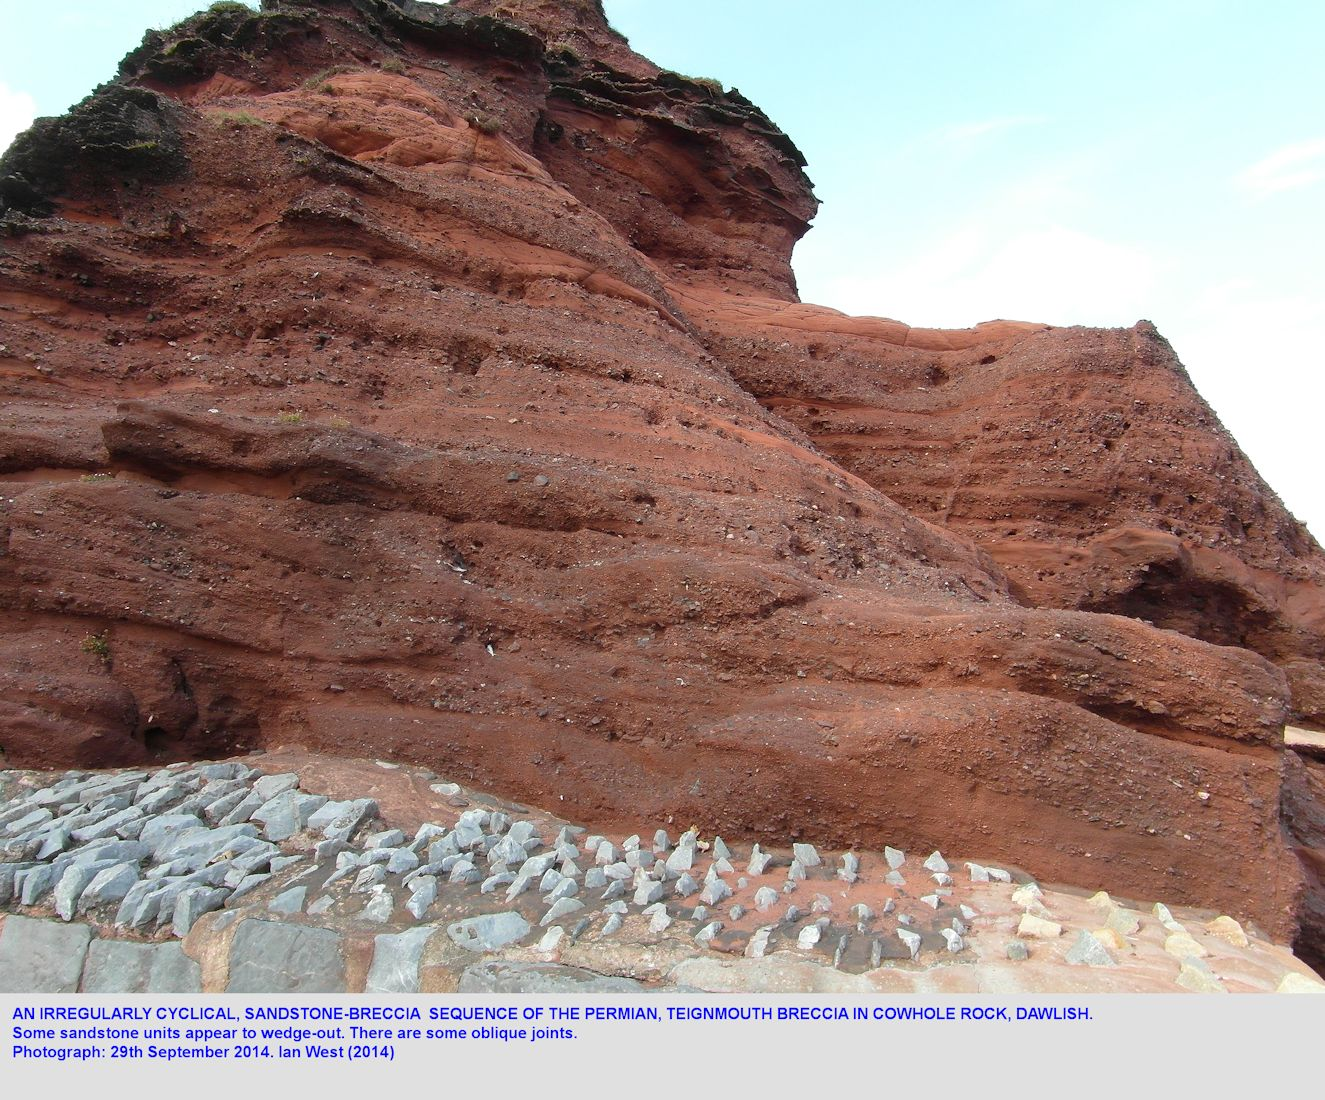 Alternating thin beds of sandstone and breccia in the Permian Teign Breccia of Cowhole Rock, Dawlish, Devon, 29th September 2014